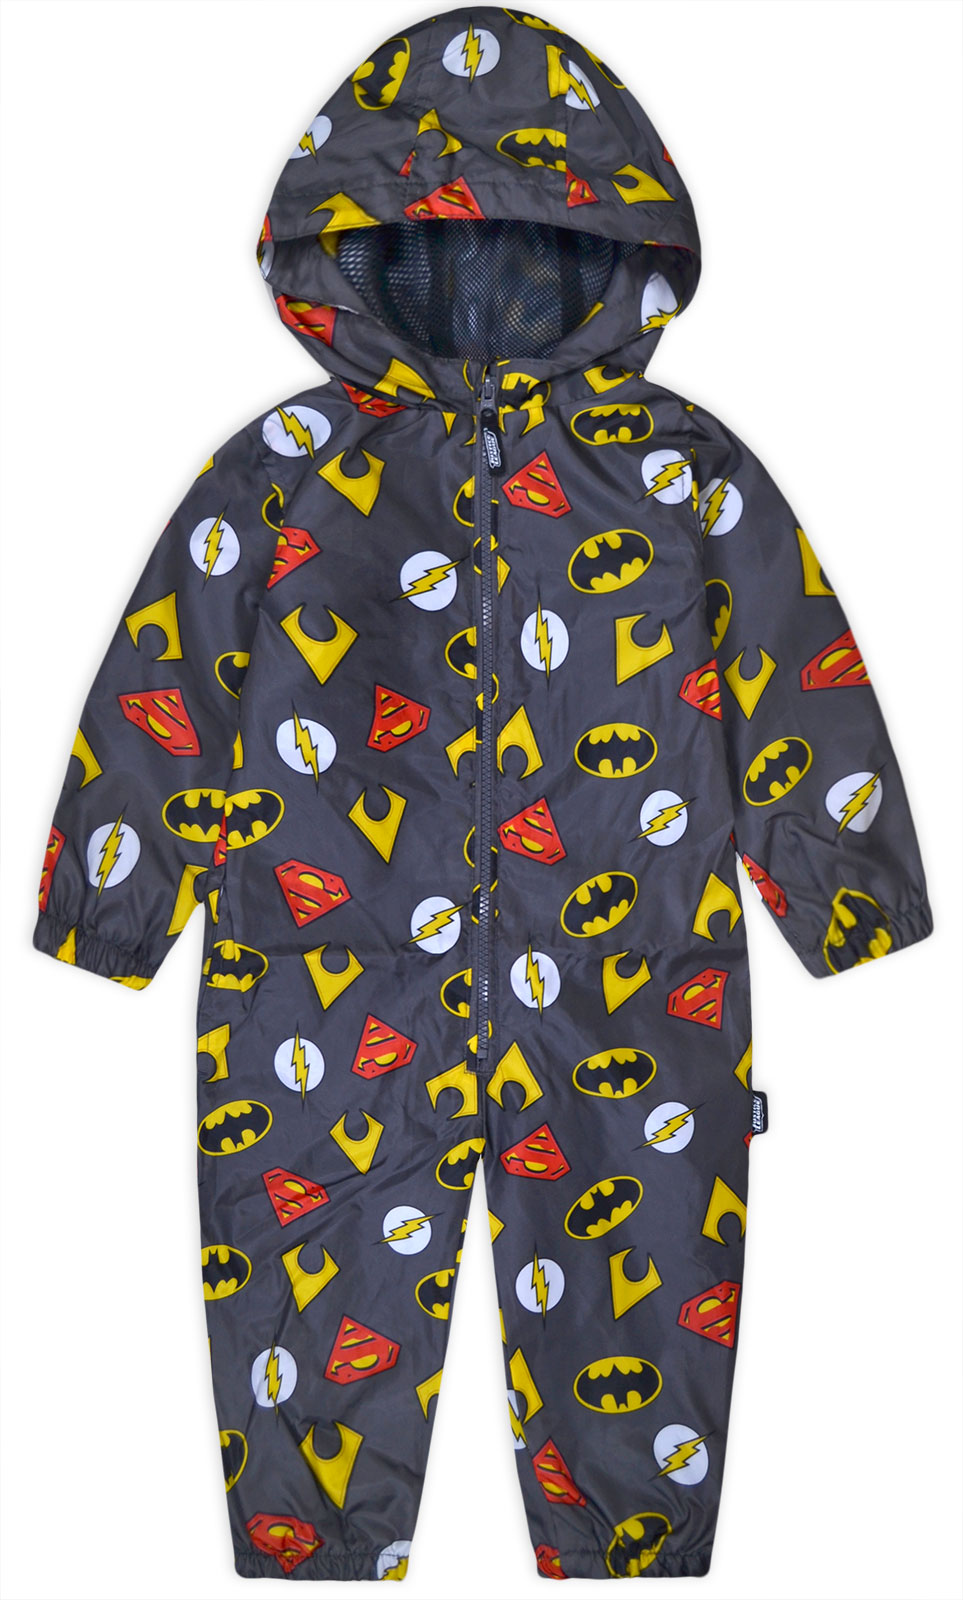 Boys DC Batman One Piece Pyjamas Jumpsuit All In One Size Medium Age 7 8 9 Years